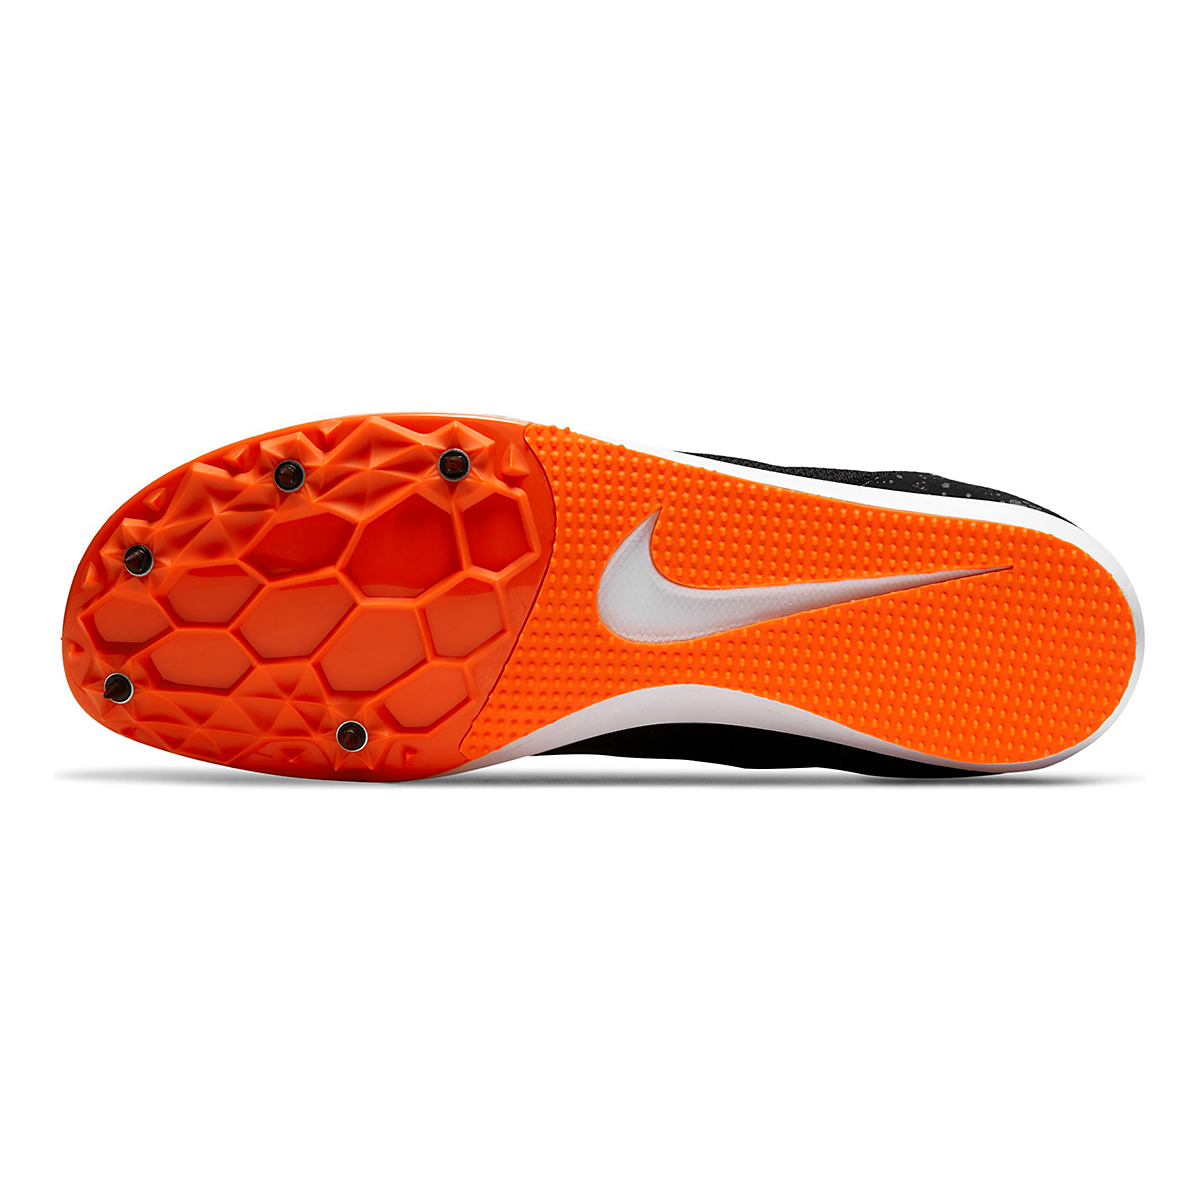 Nike Zoom Rival D 10 Track Spikes - Color: Black/White/Iron Grey/Hyper Crimson - Size: M4/W5.5 - Width: Regular, Black/White/Iron Grey/Hyper Crimson, large, image 3